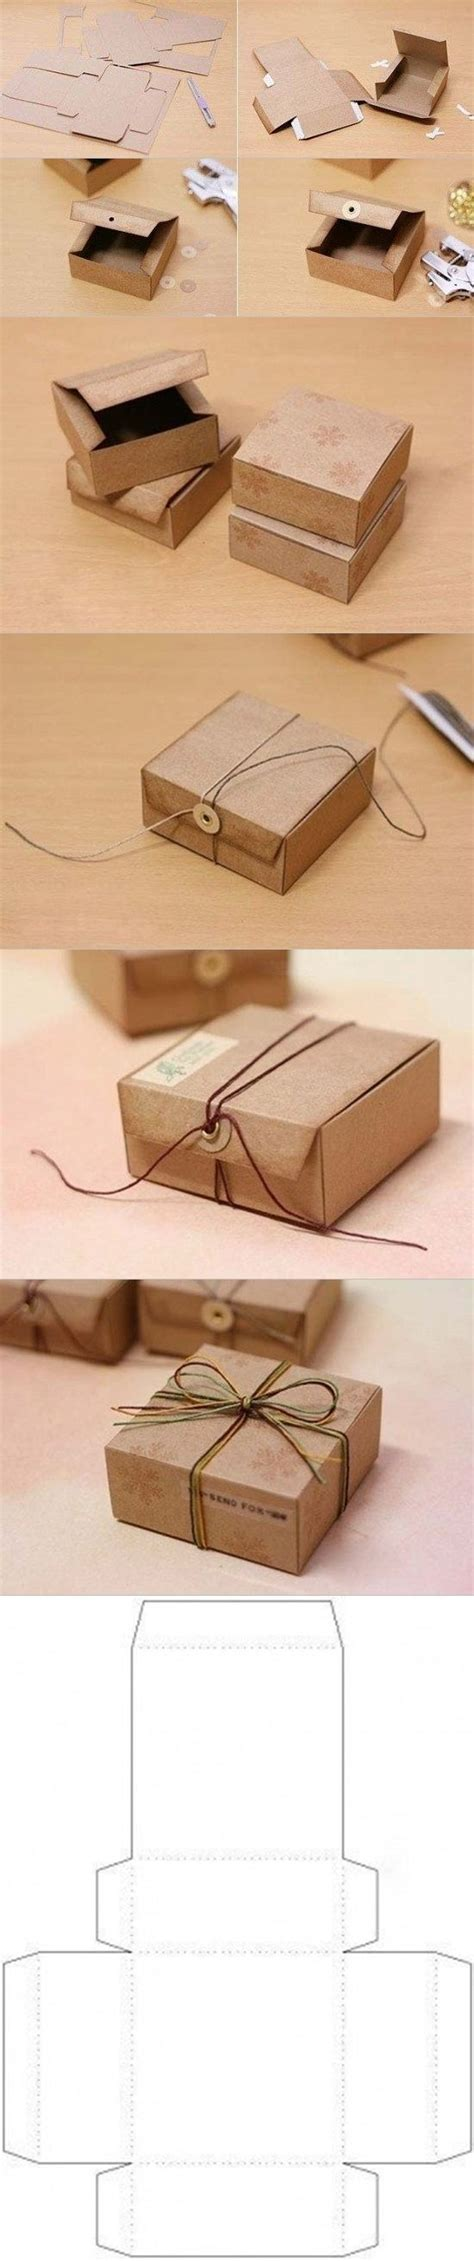 diy cardboard crafts diy gift box from cardboard www fabartdiy